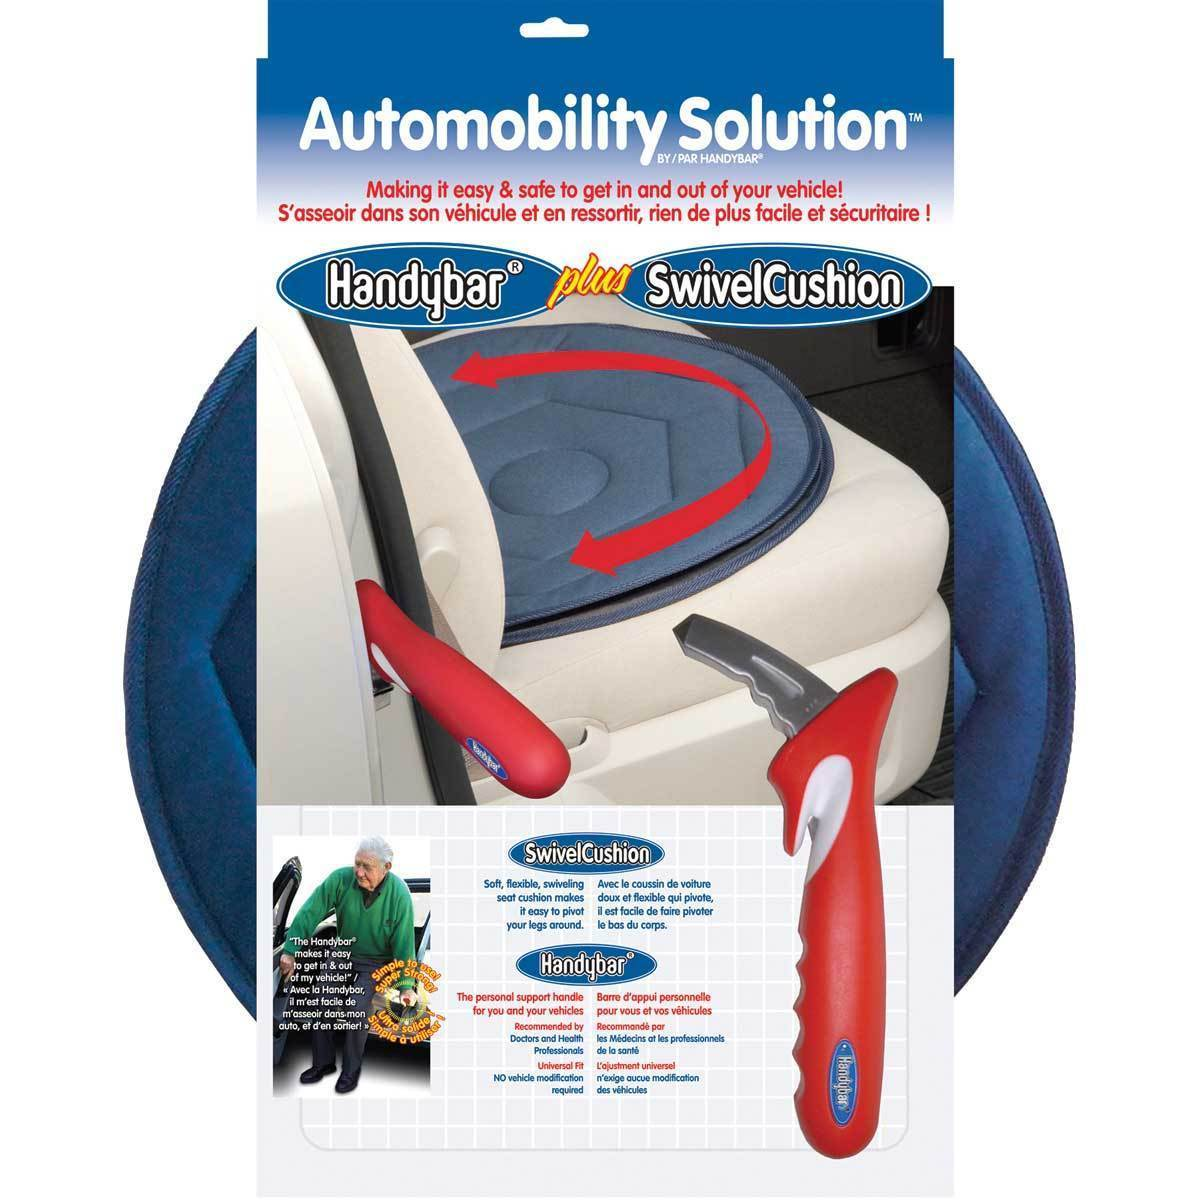 Handybar Automobility Solution Handybar & Swivel Cushion w/Quilted Padding Cover